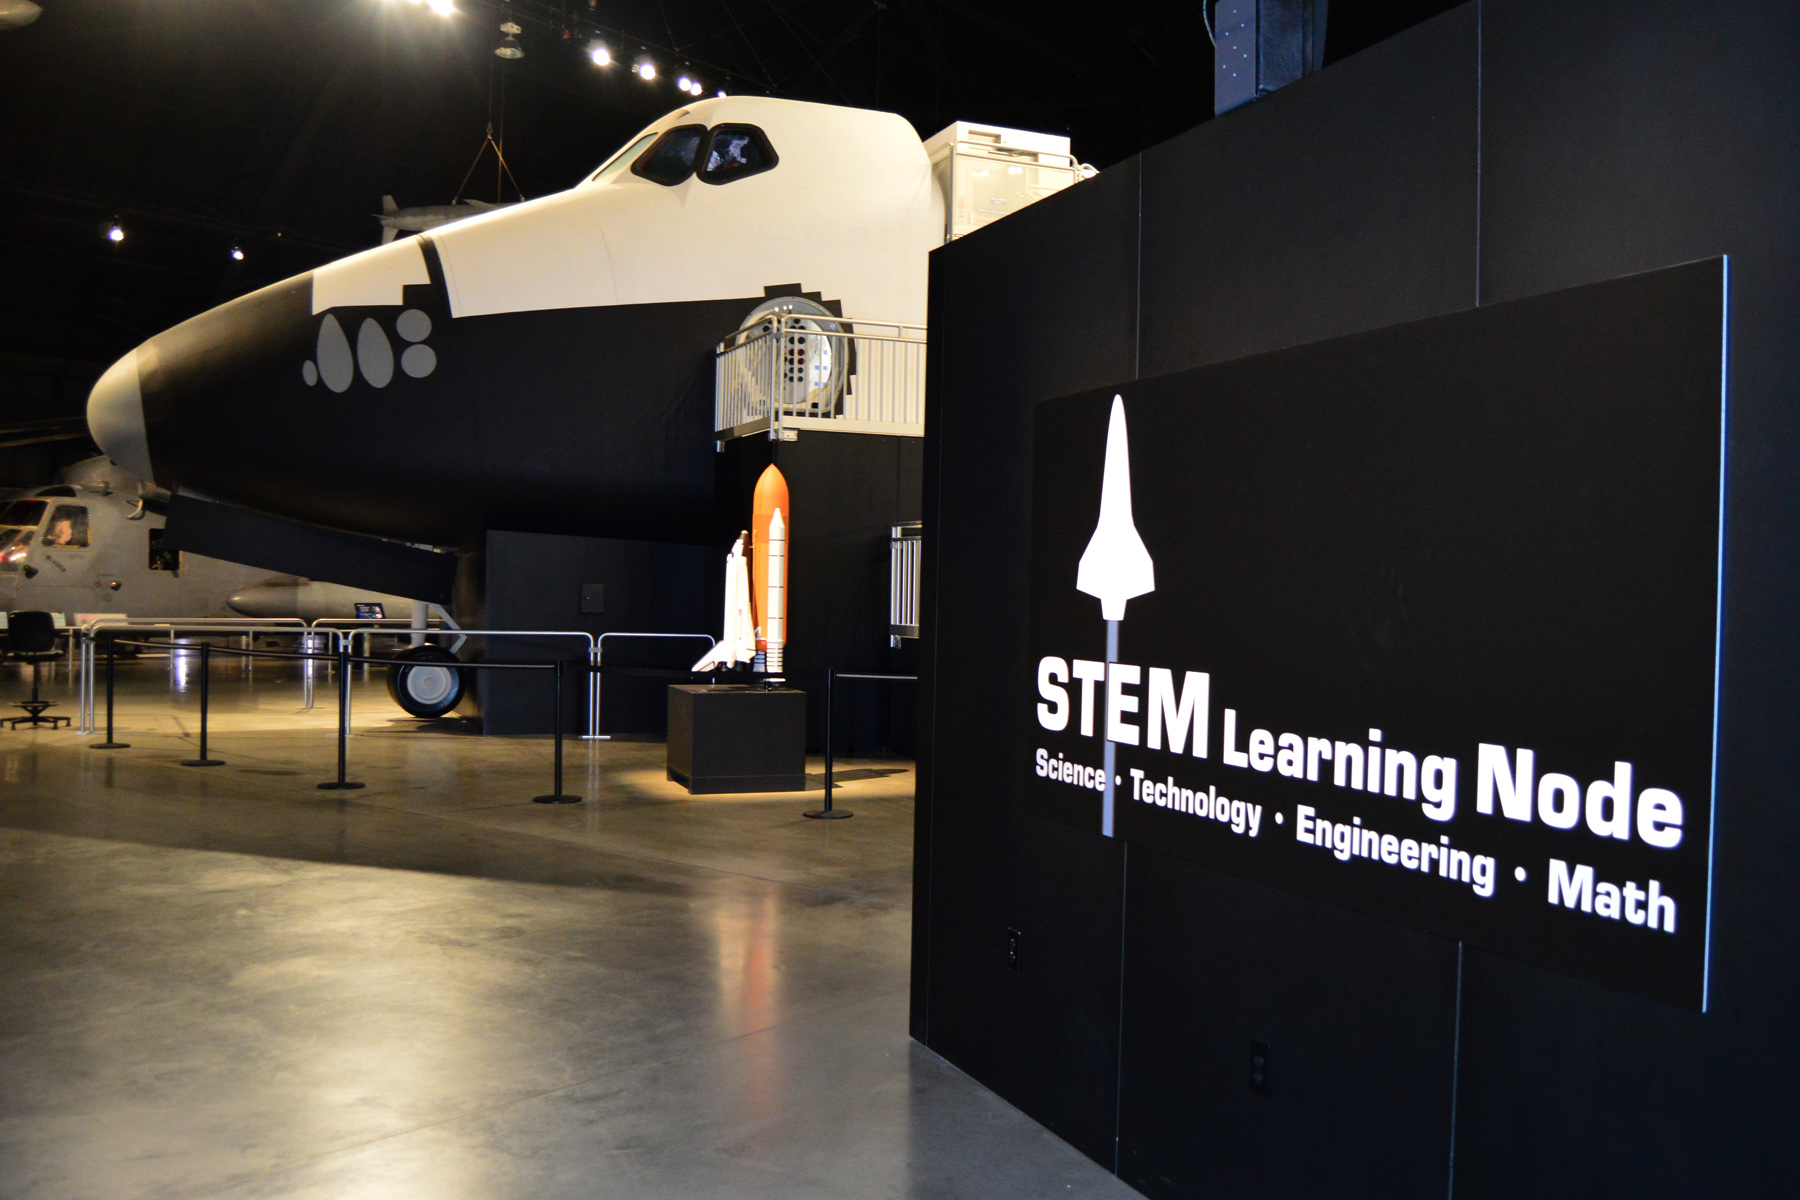 A general view of the STEM Learning Node, which is adjacent to the space shuttle exhibit in the Cold War Gallery at the National Museum of the U.S. Air Force. (U.S. Air Force photo)